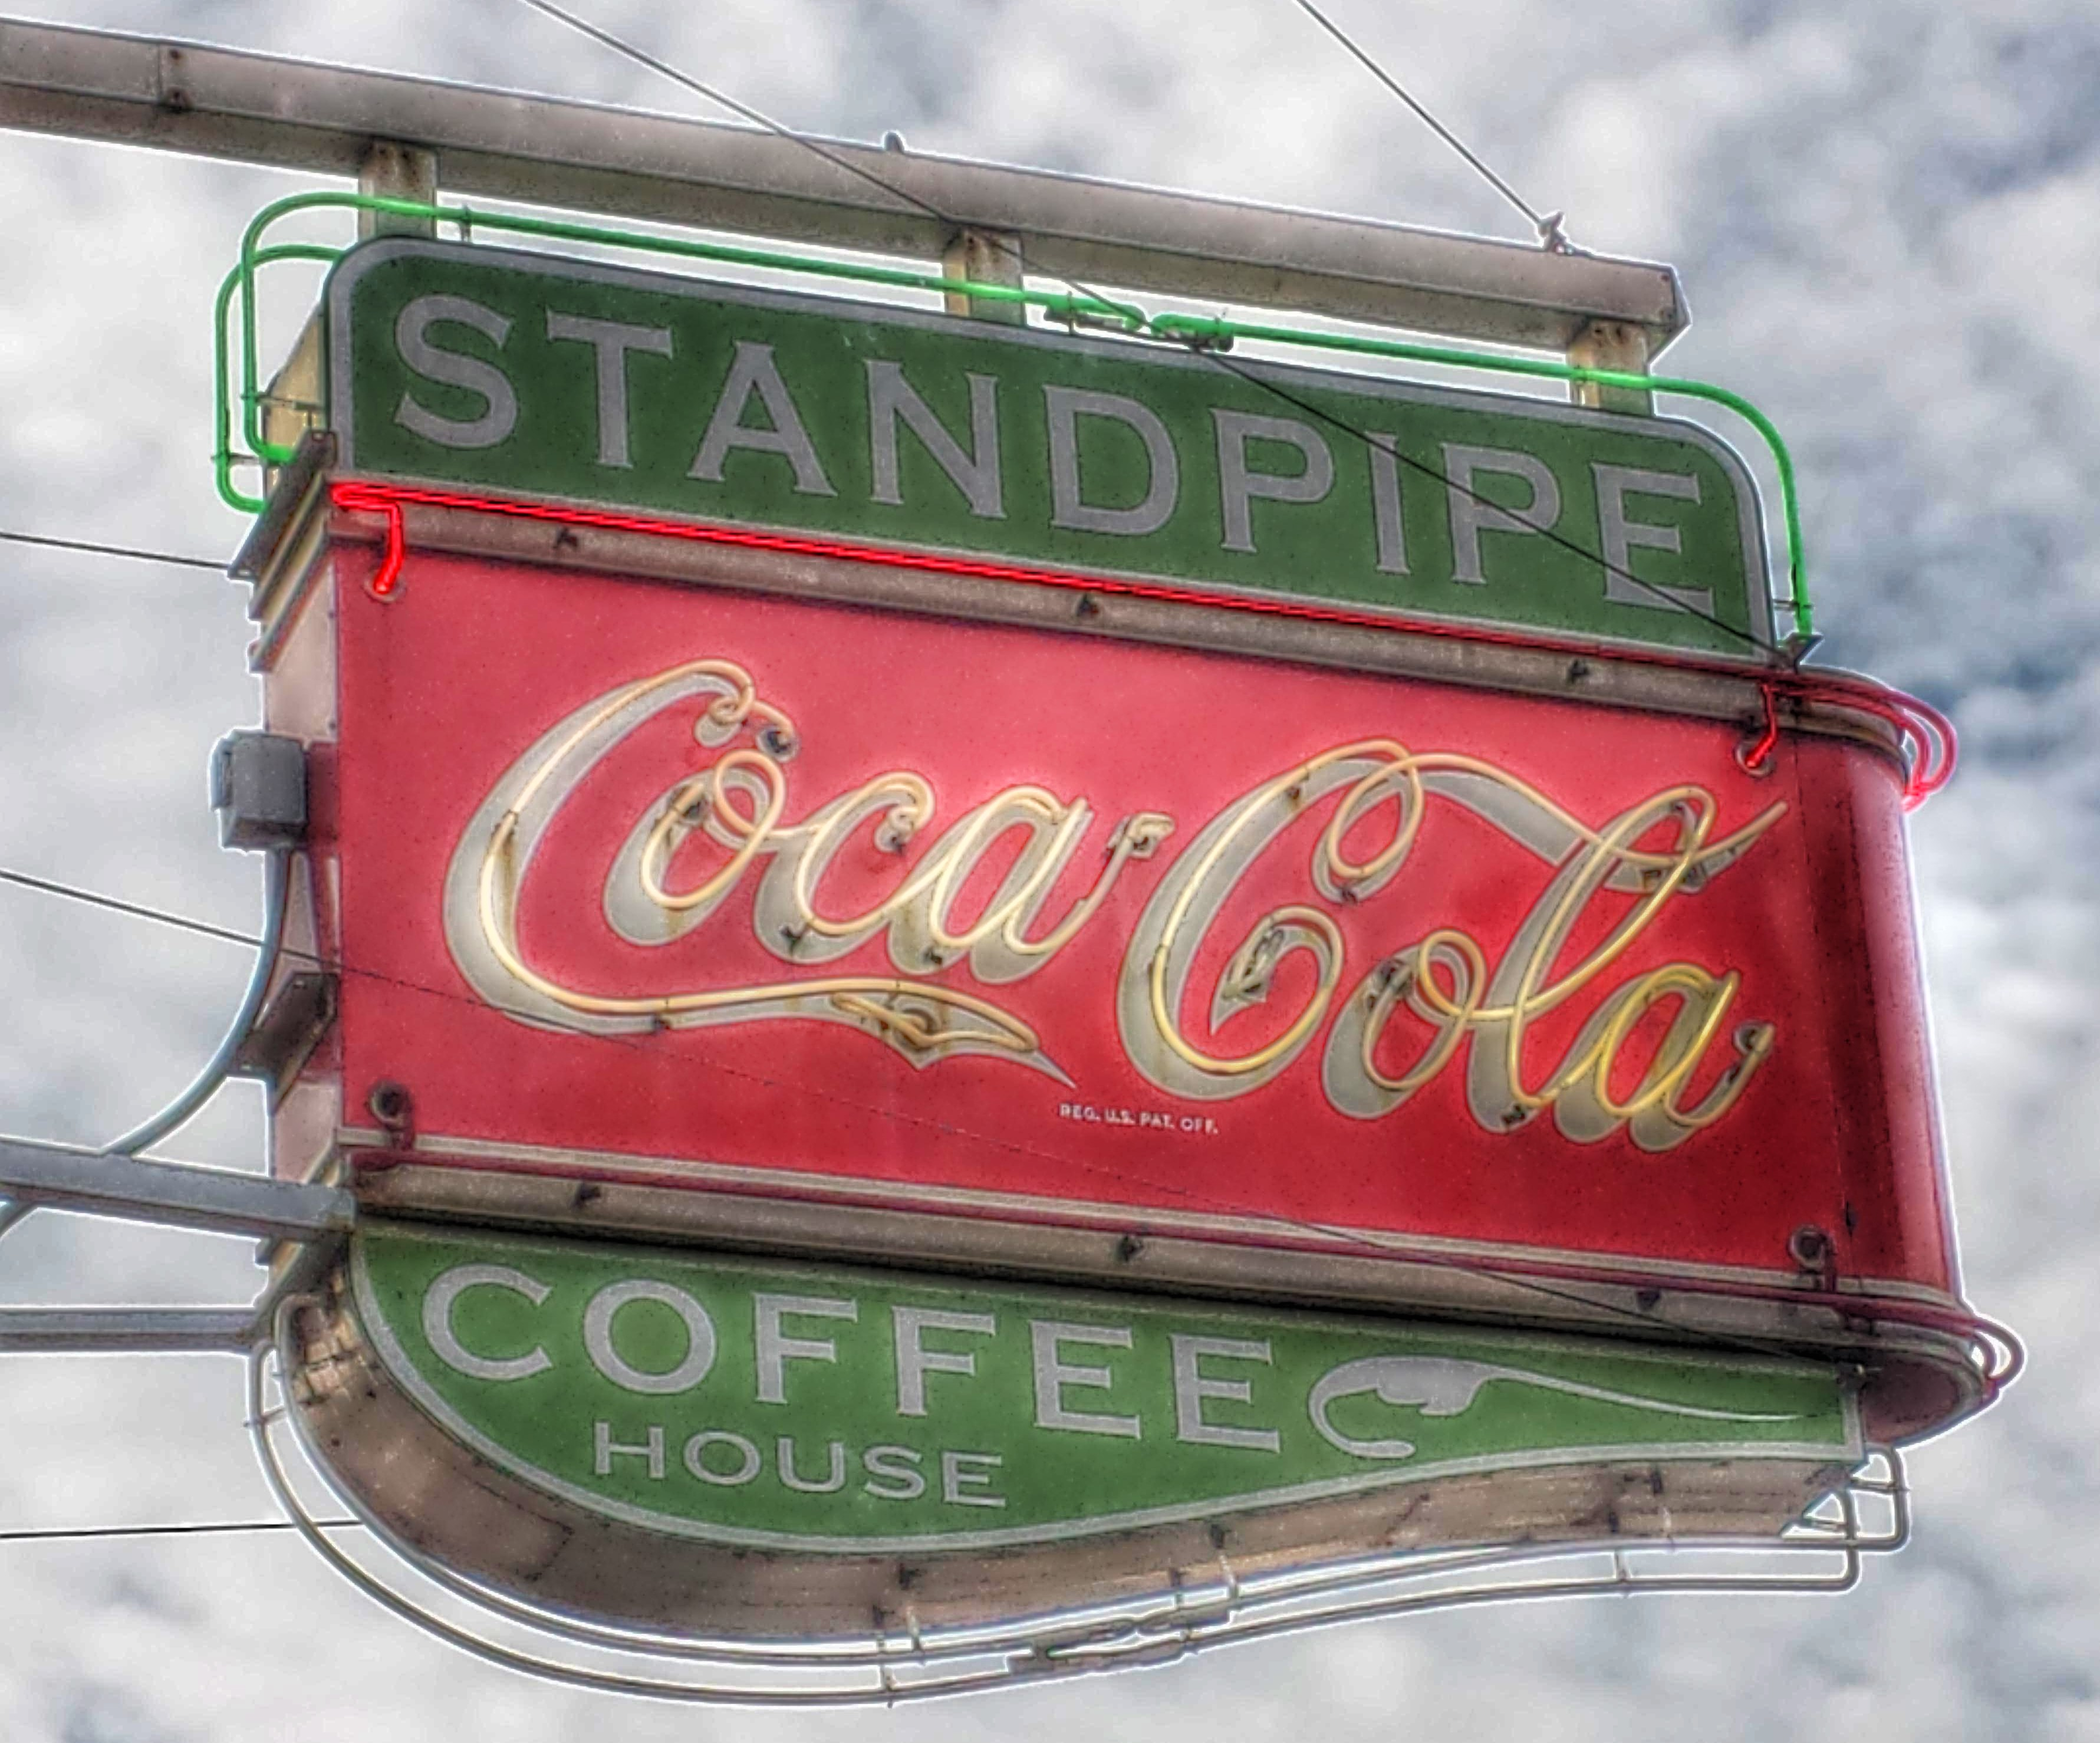 Standpipe Coffee House - 123 South 1st Street, Lufkin, Texas U.S.A. - April 11, 2015